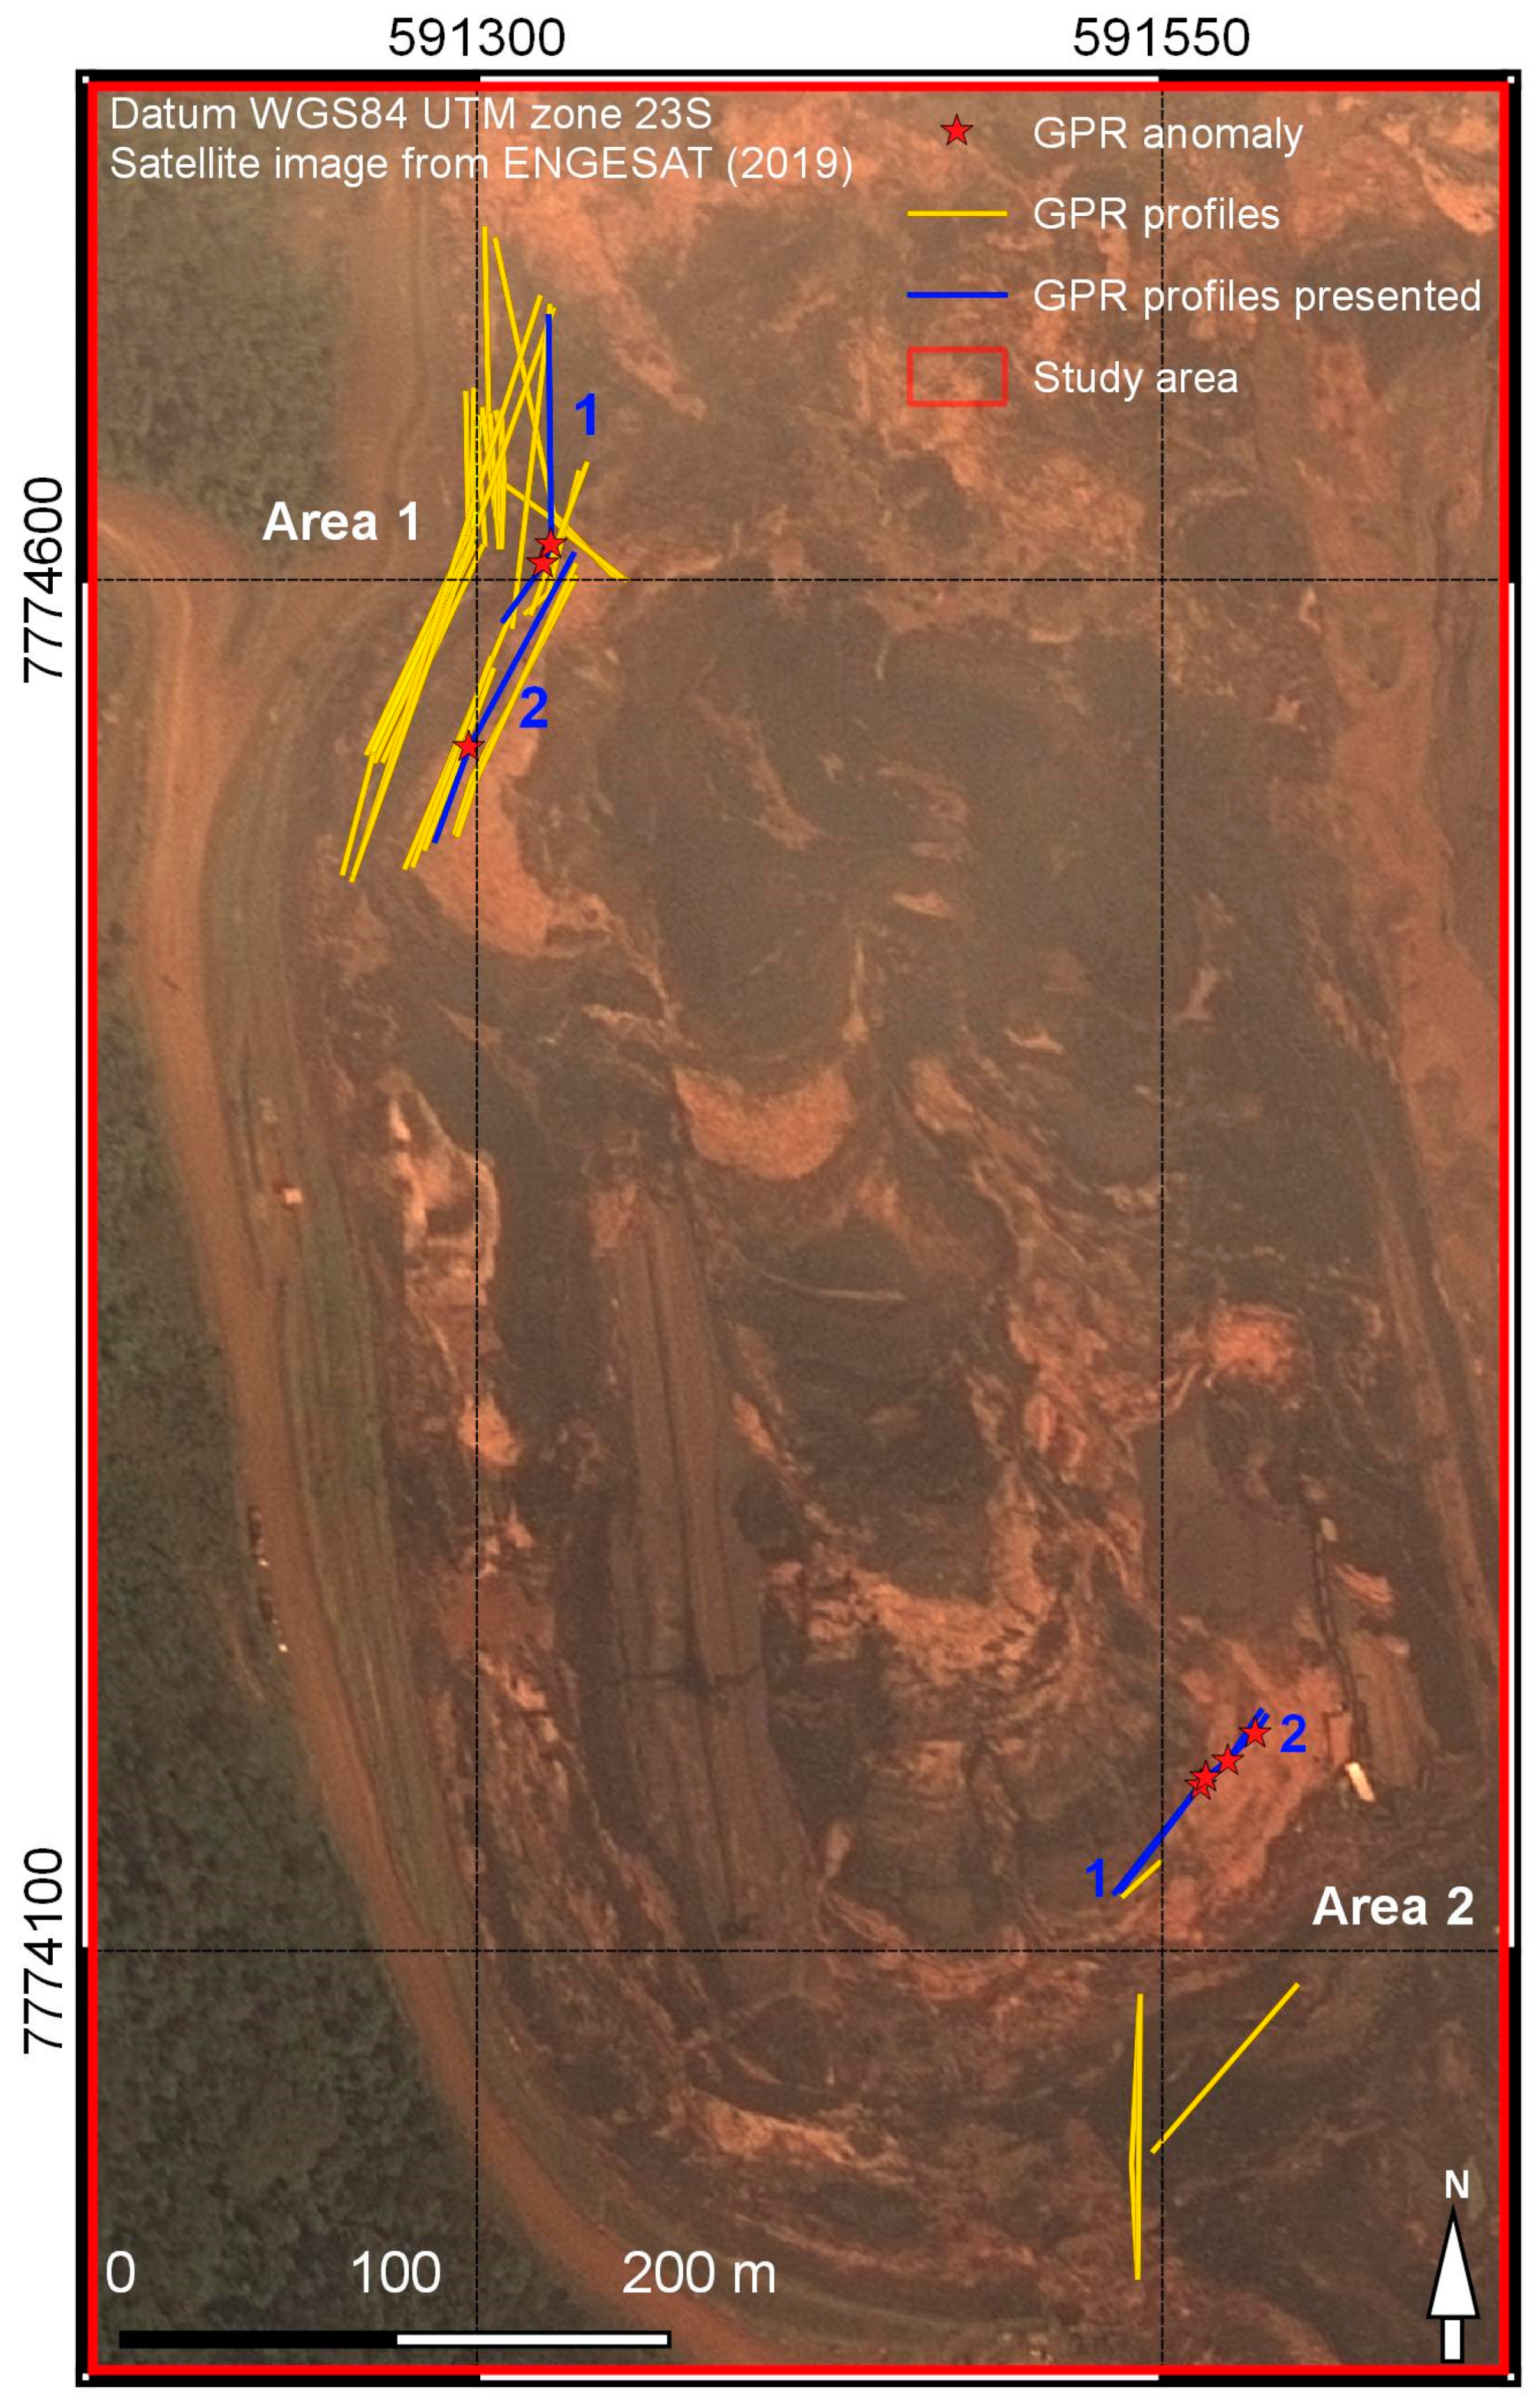 Remote Sensing | Free Full-Text | GPR Survey on an Iron Mining Area